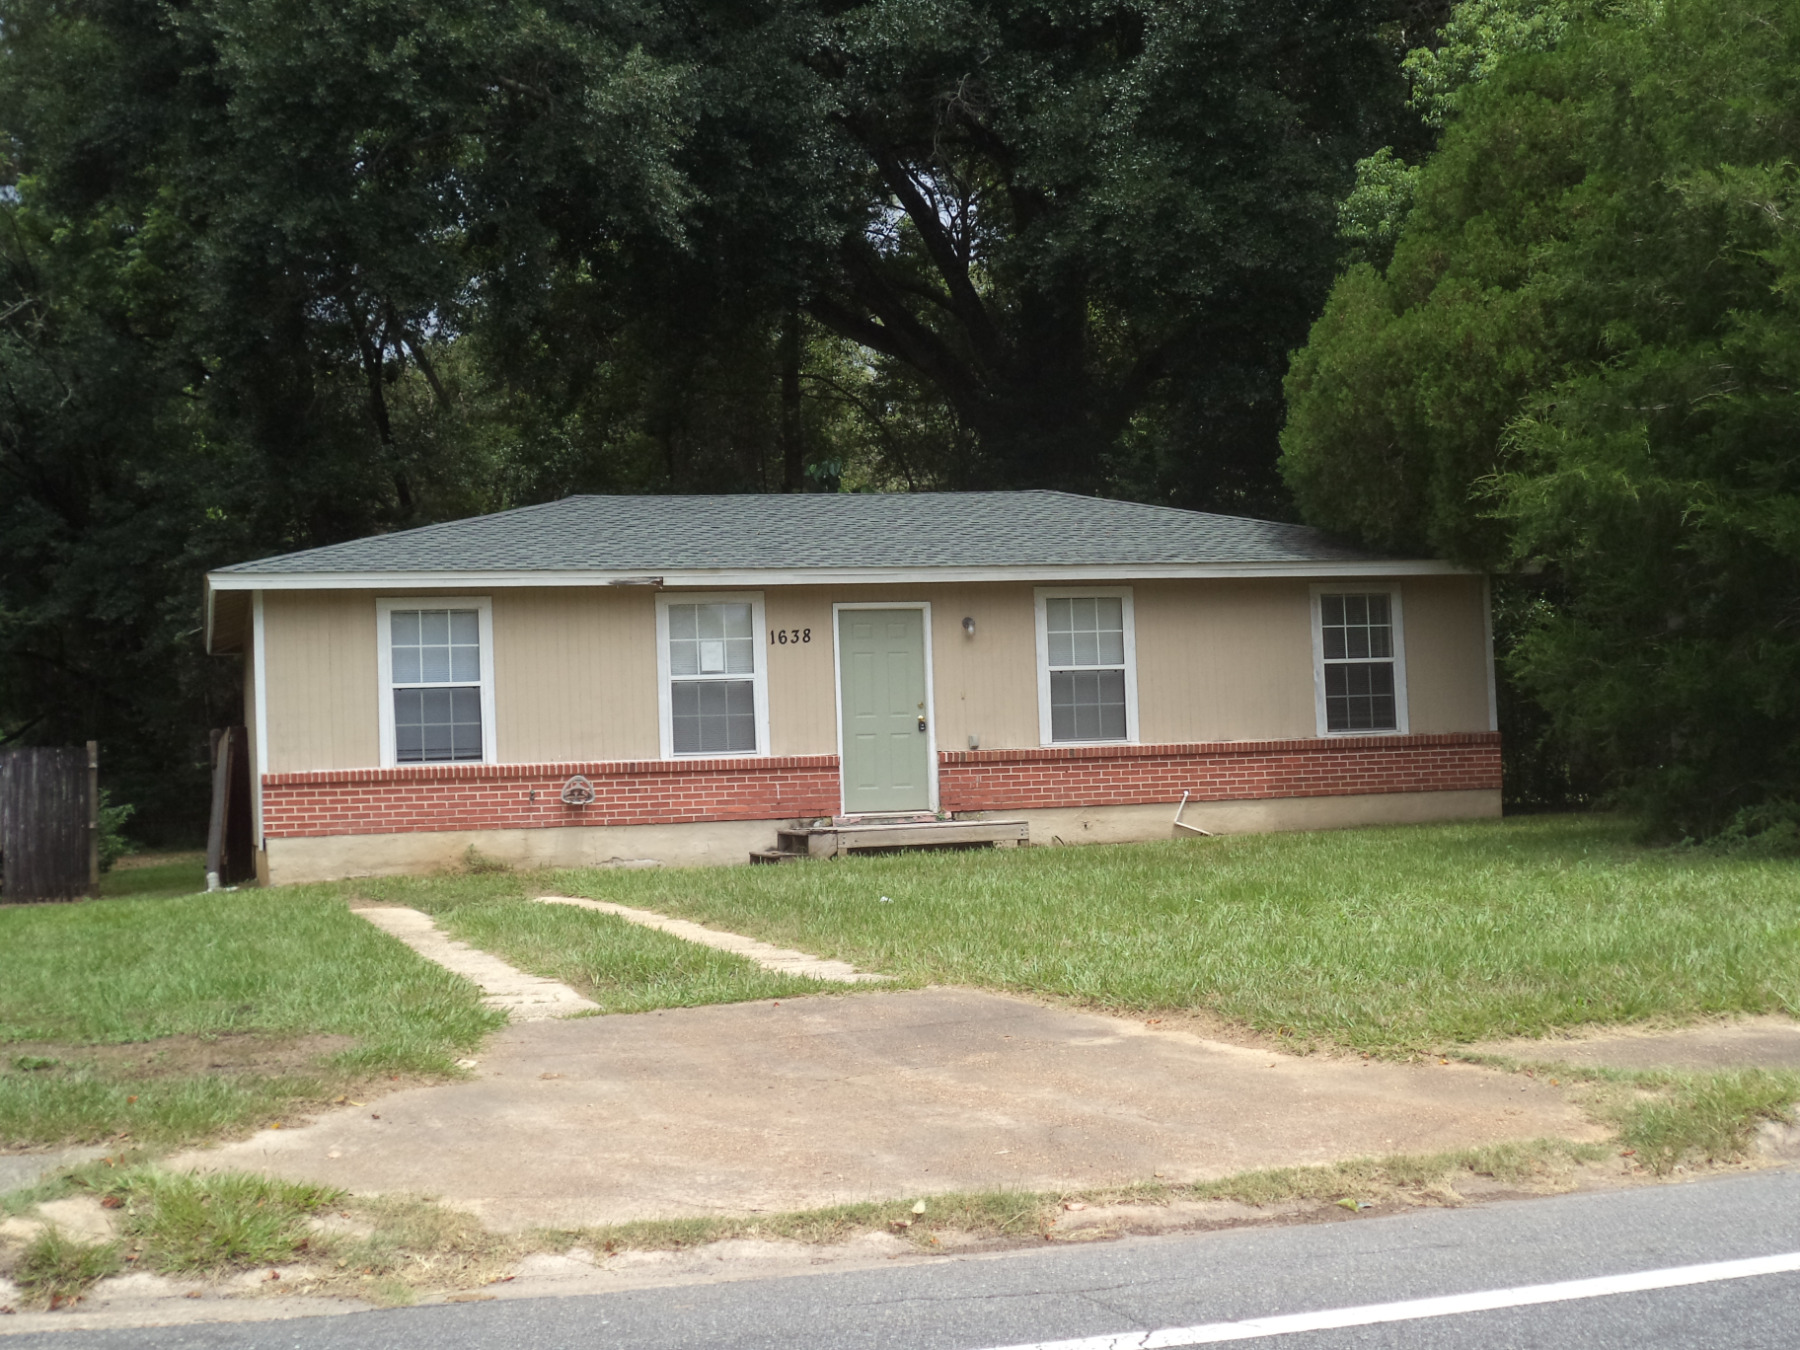 32310 foreclosures – 1638 Levy Ave, Tallahassee, FL 32310